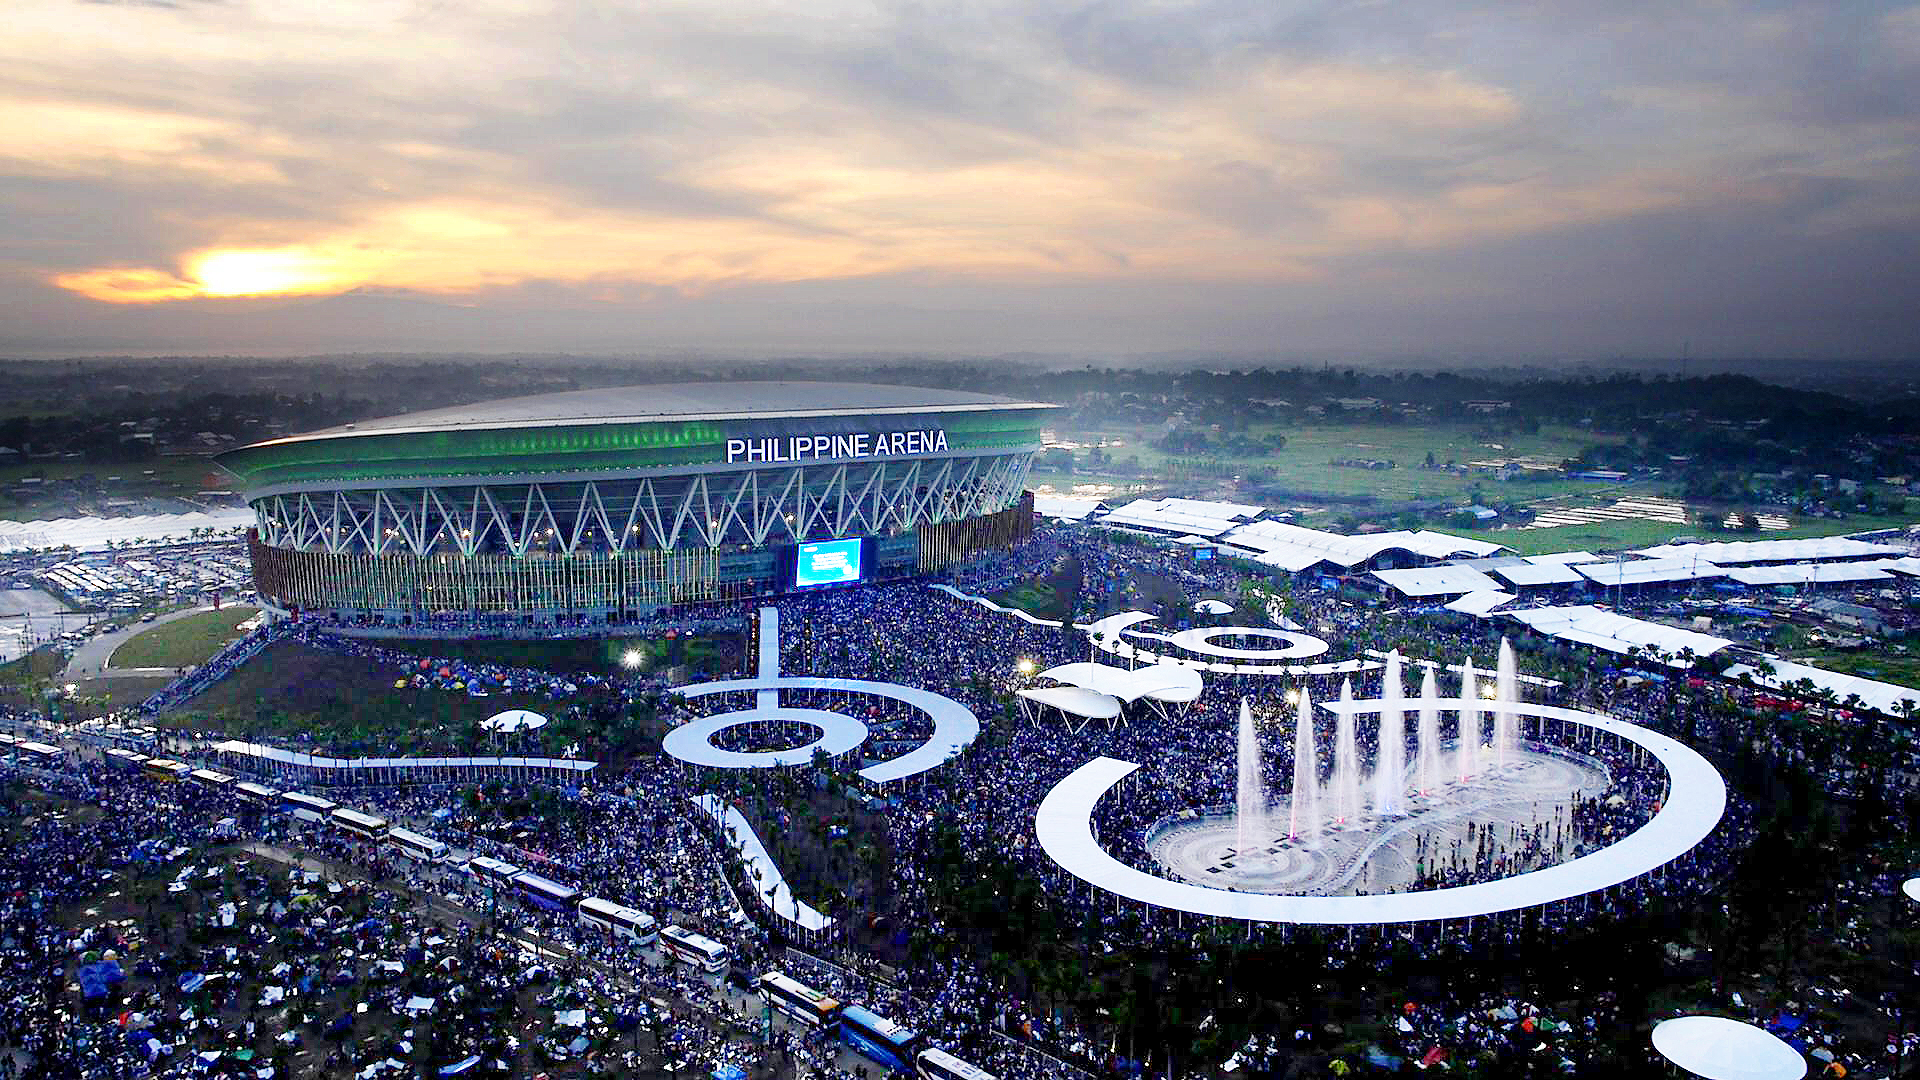 China Wallpaper Full Hd Philippine Arena Populous